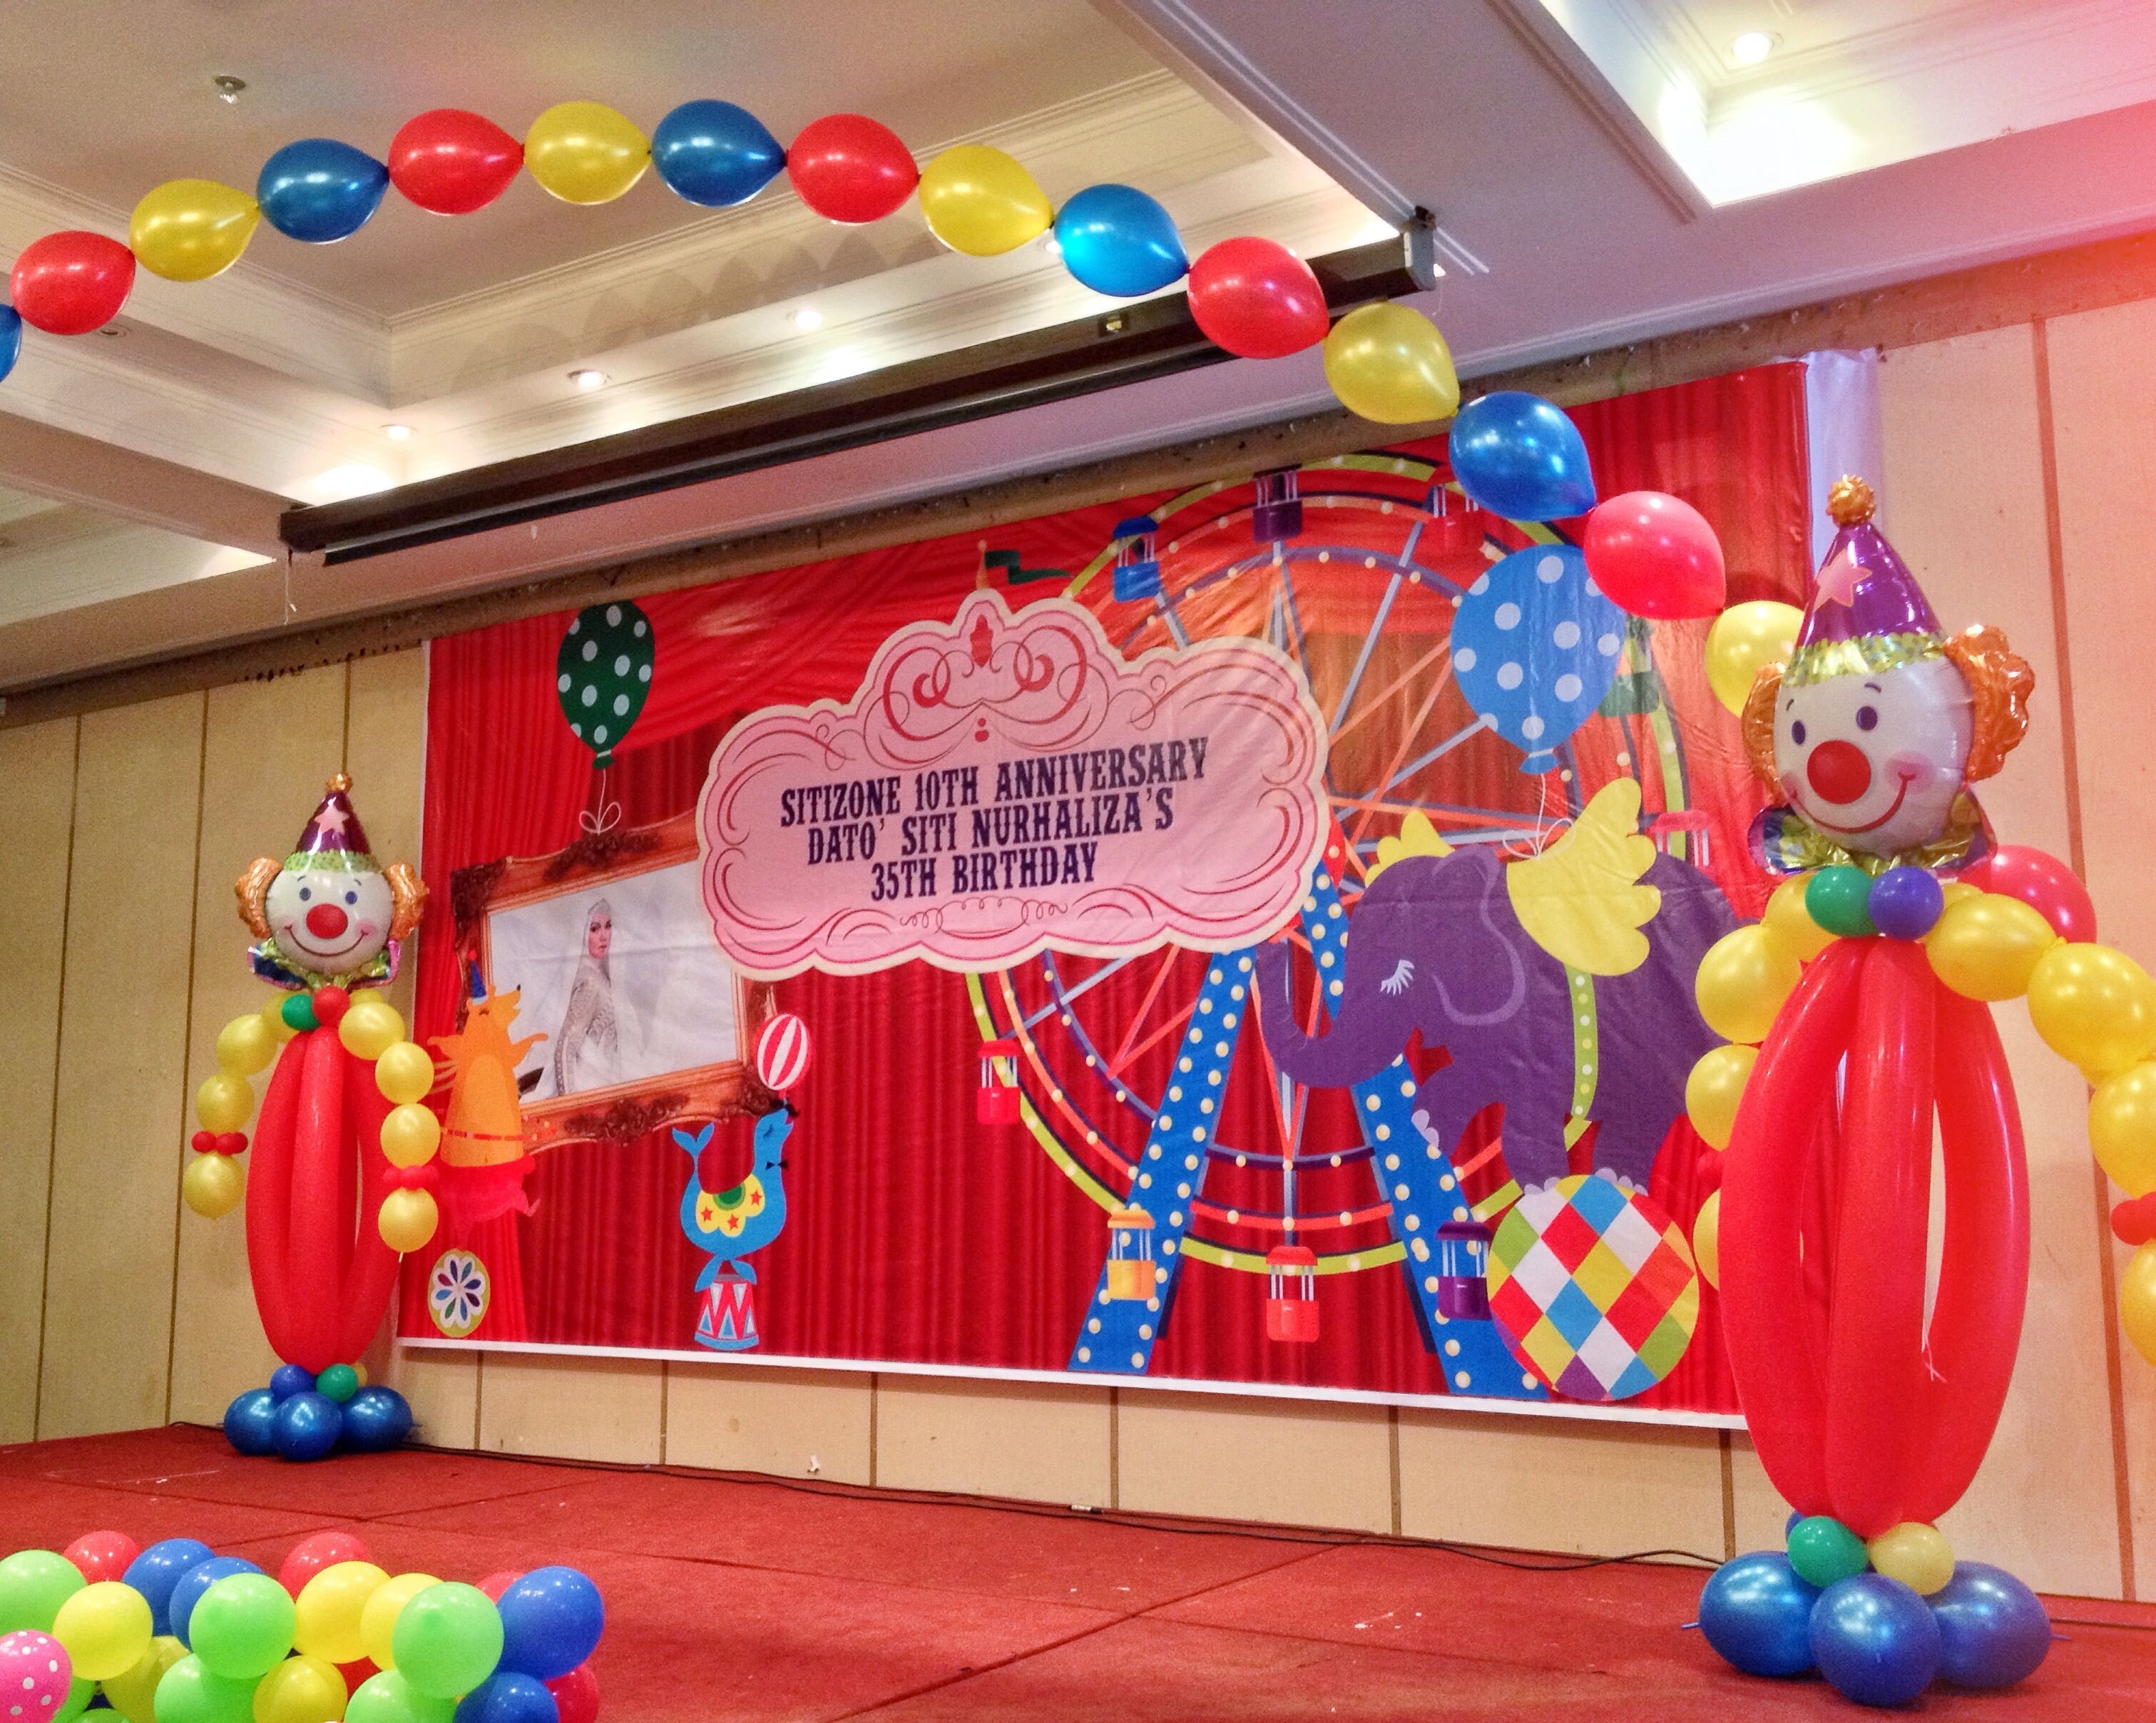 Carnival themed party welcome arch balloons circus balloons pinterest carnival themed - Carnival theme decoration ideas ...